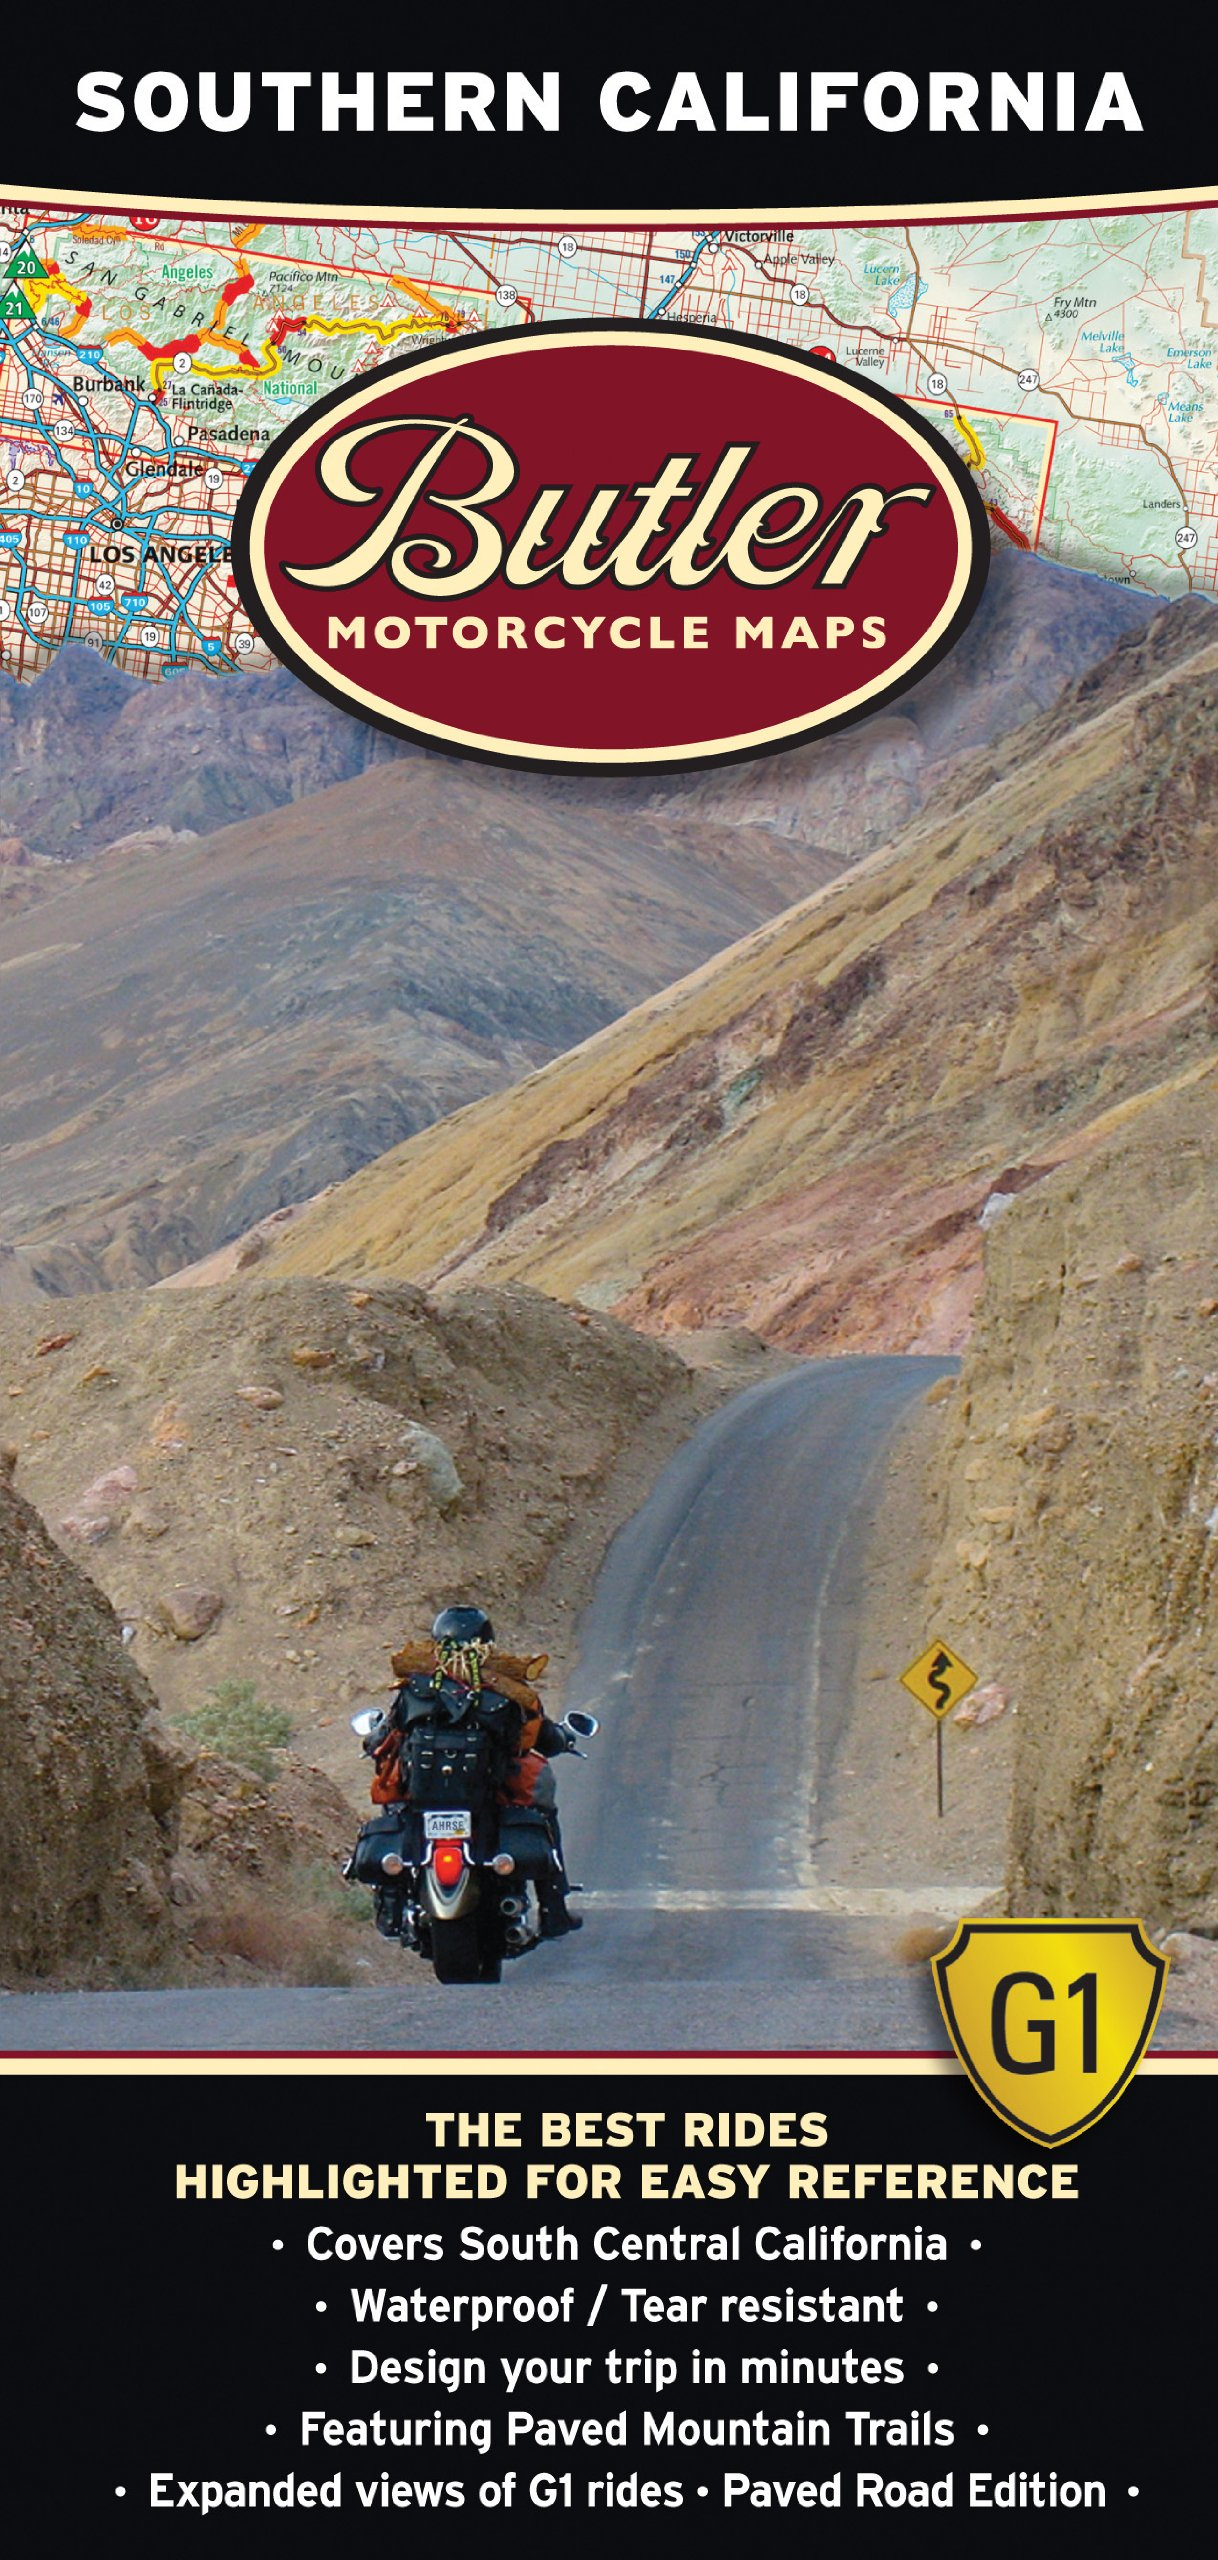 Butler Maps G1 Southern California Motorcycle Map,